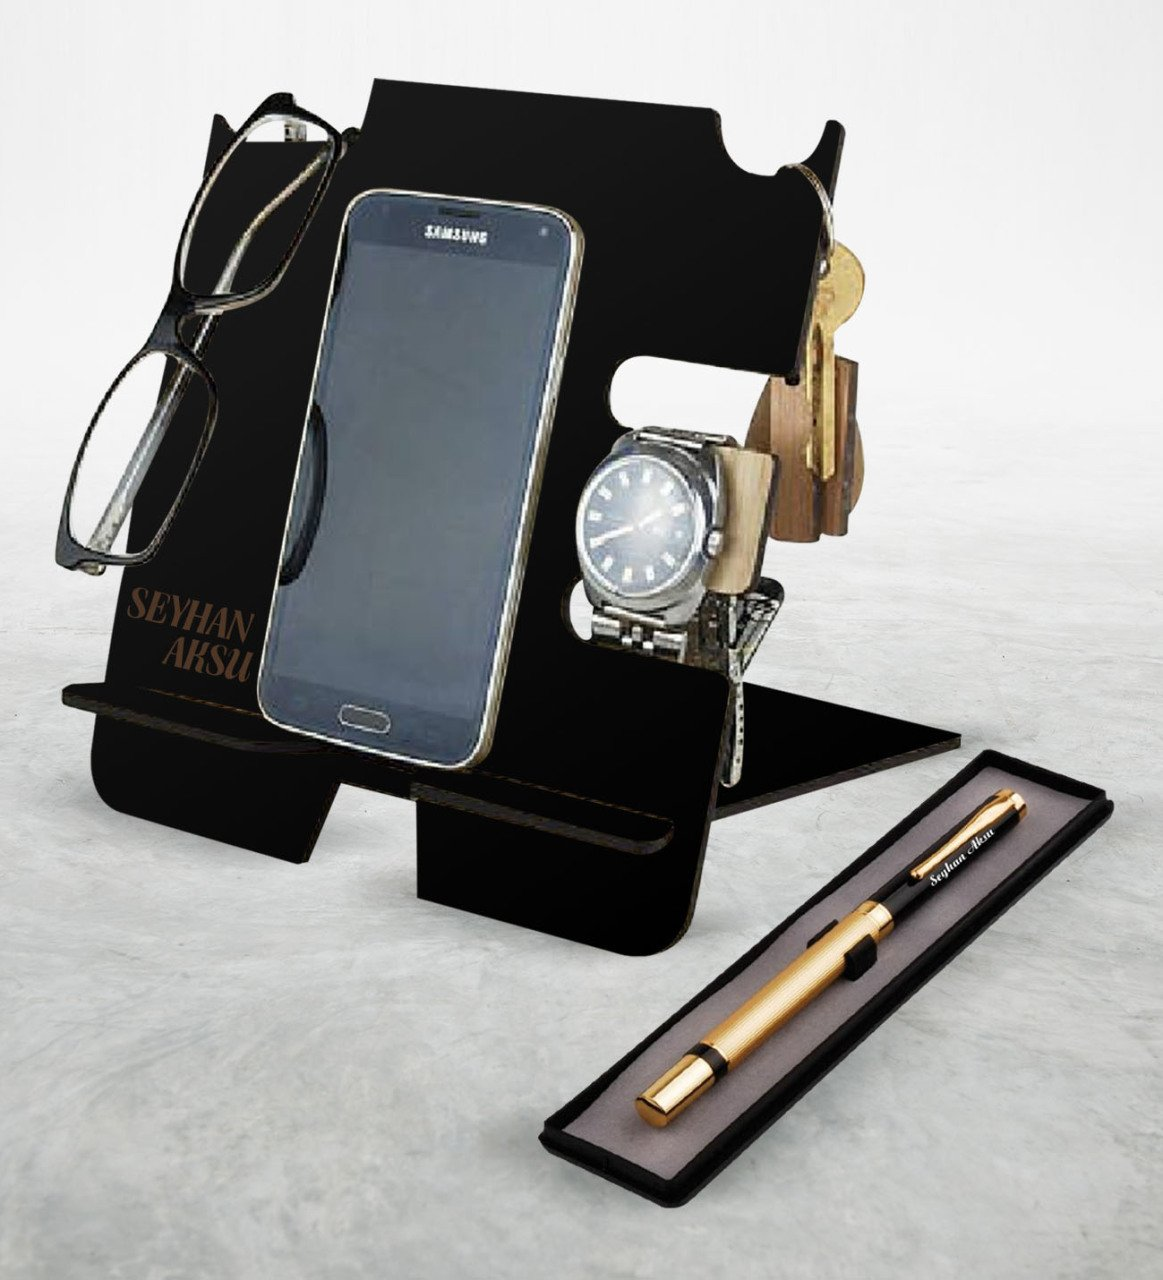 Personalized Wooden Phone Charging Stand Organizer Pen Set Blue Ball Charger Stand Quality Reliable Black Color